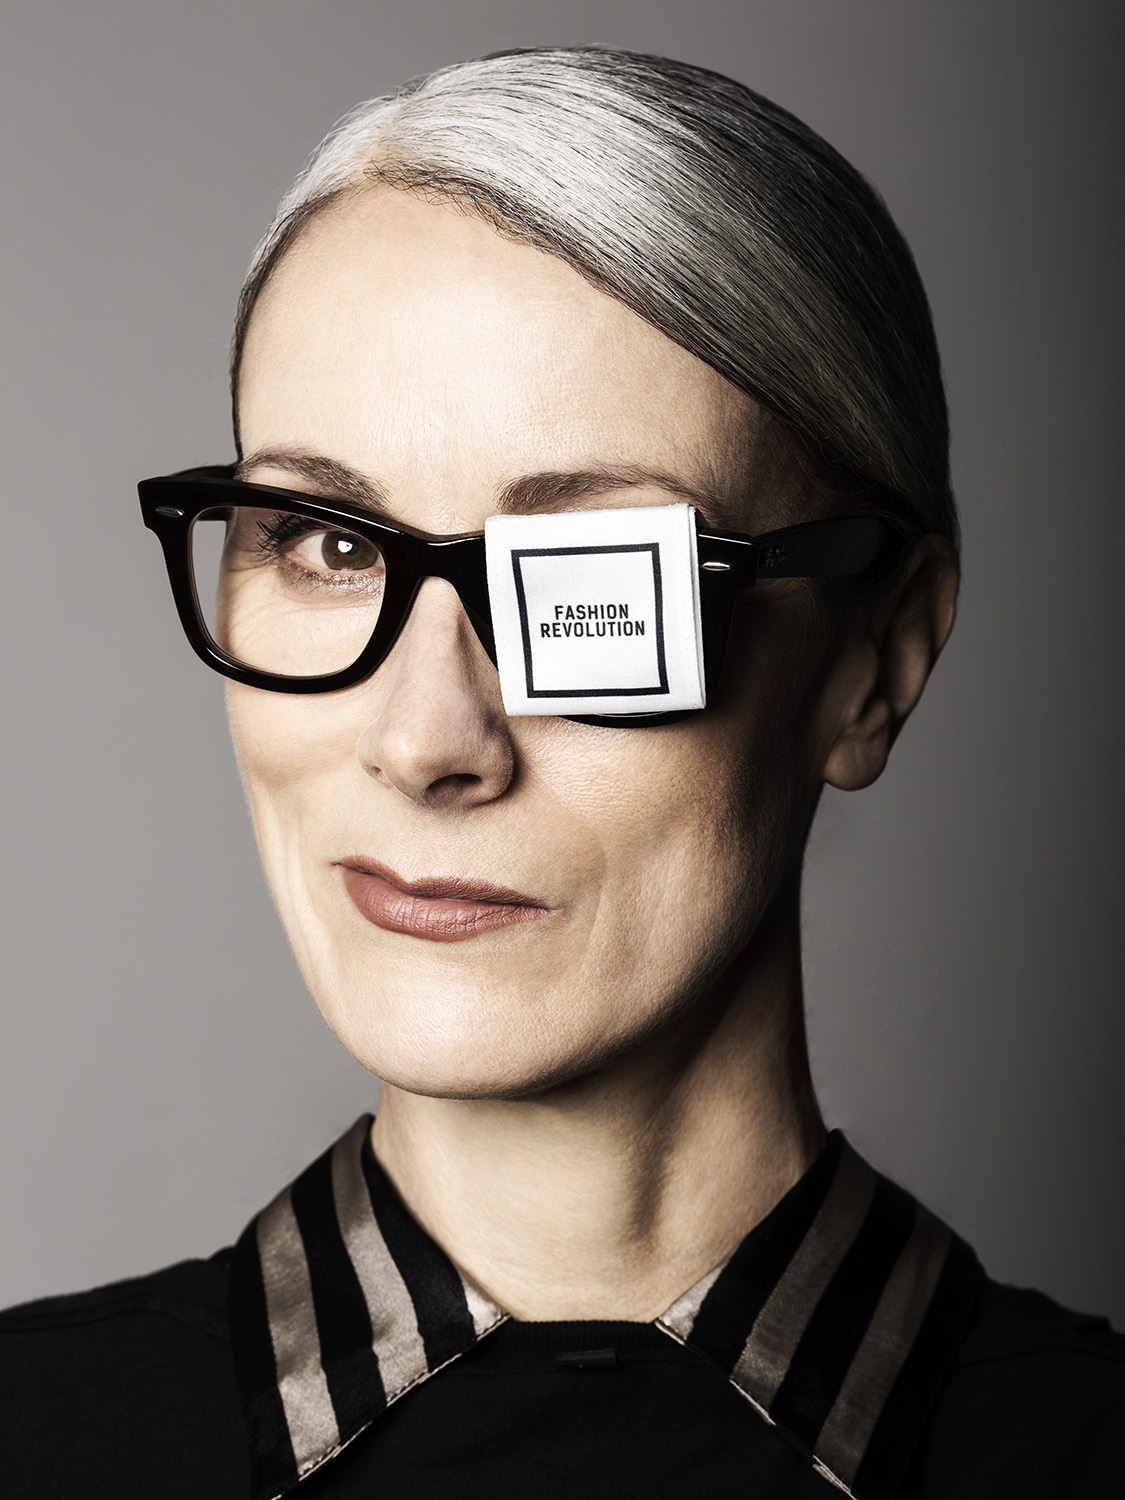 Caryn Franklin, Lauren Kay, celebrity makeup artist, fashion revolution